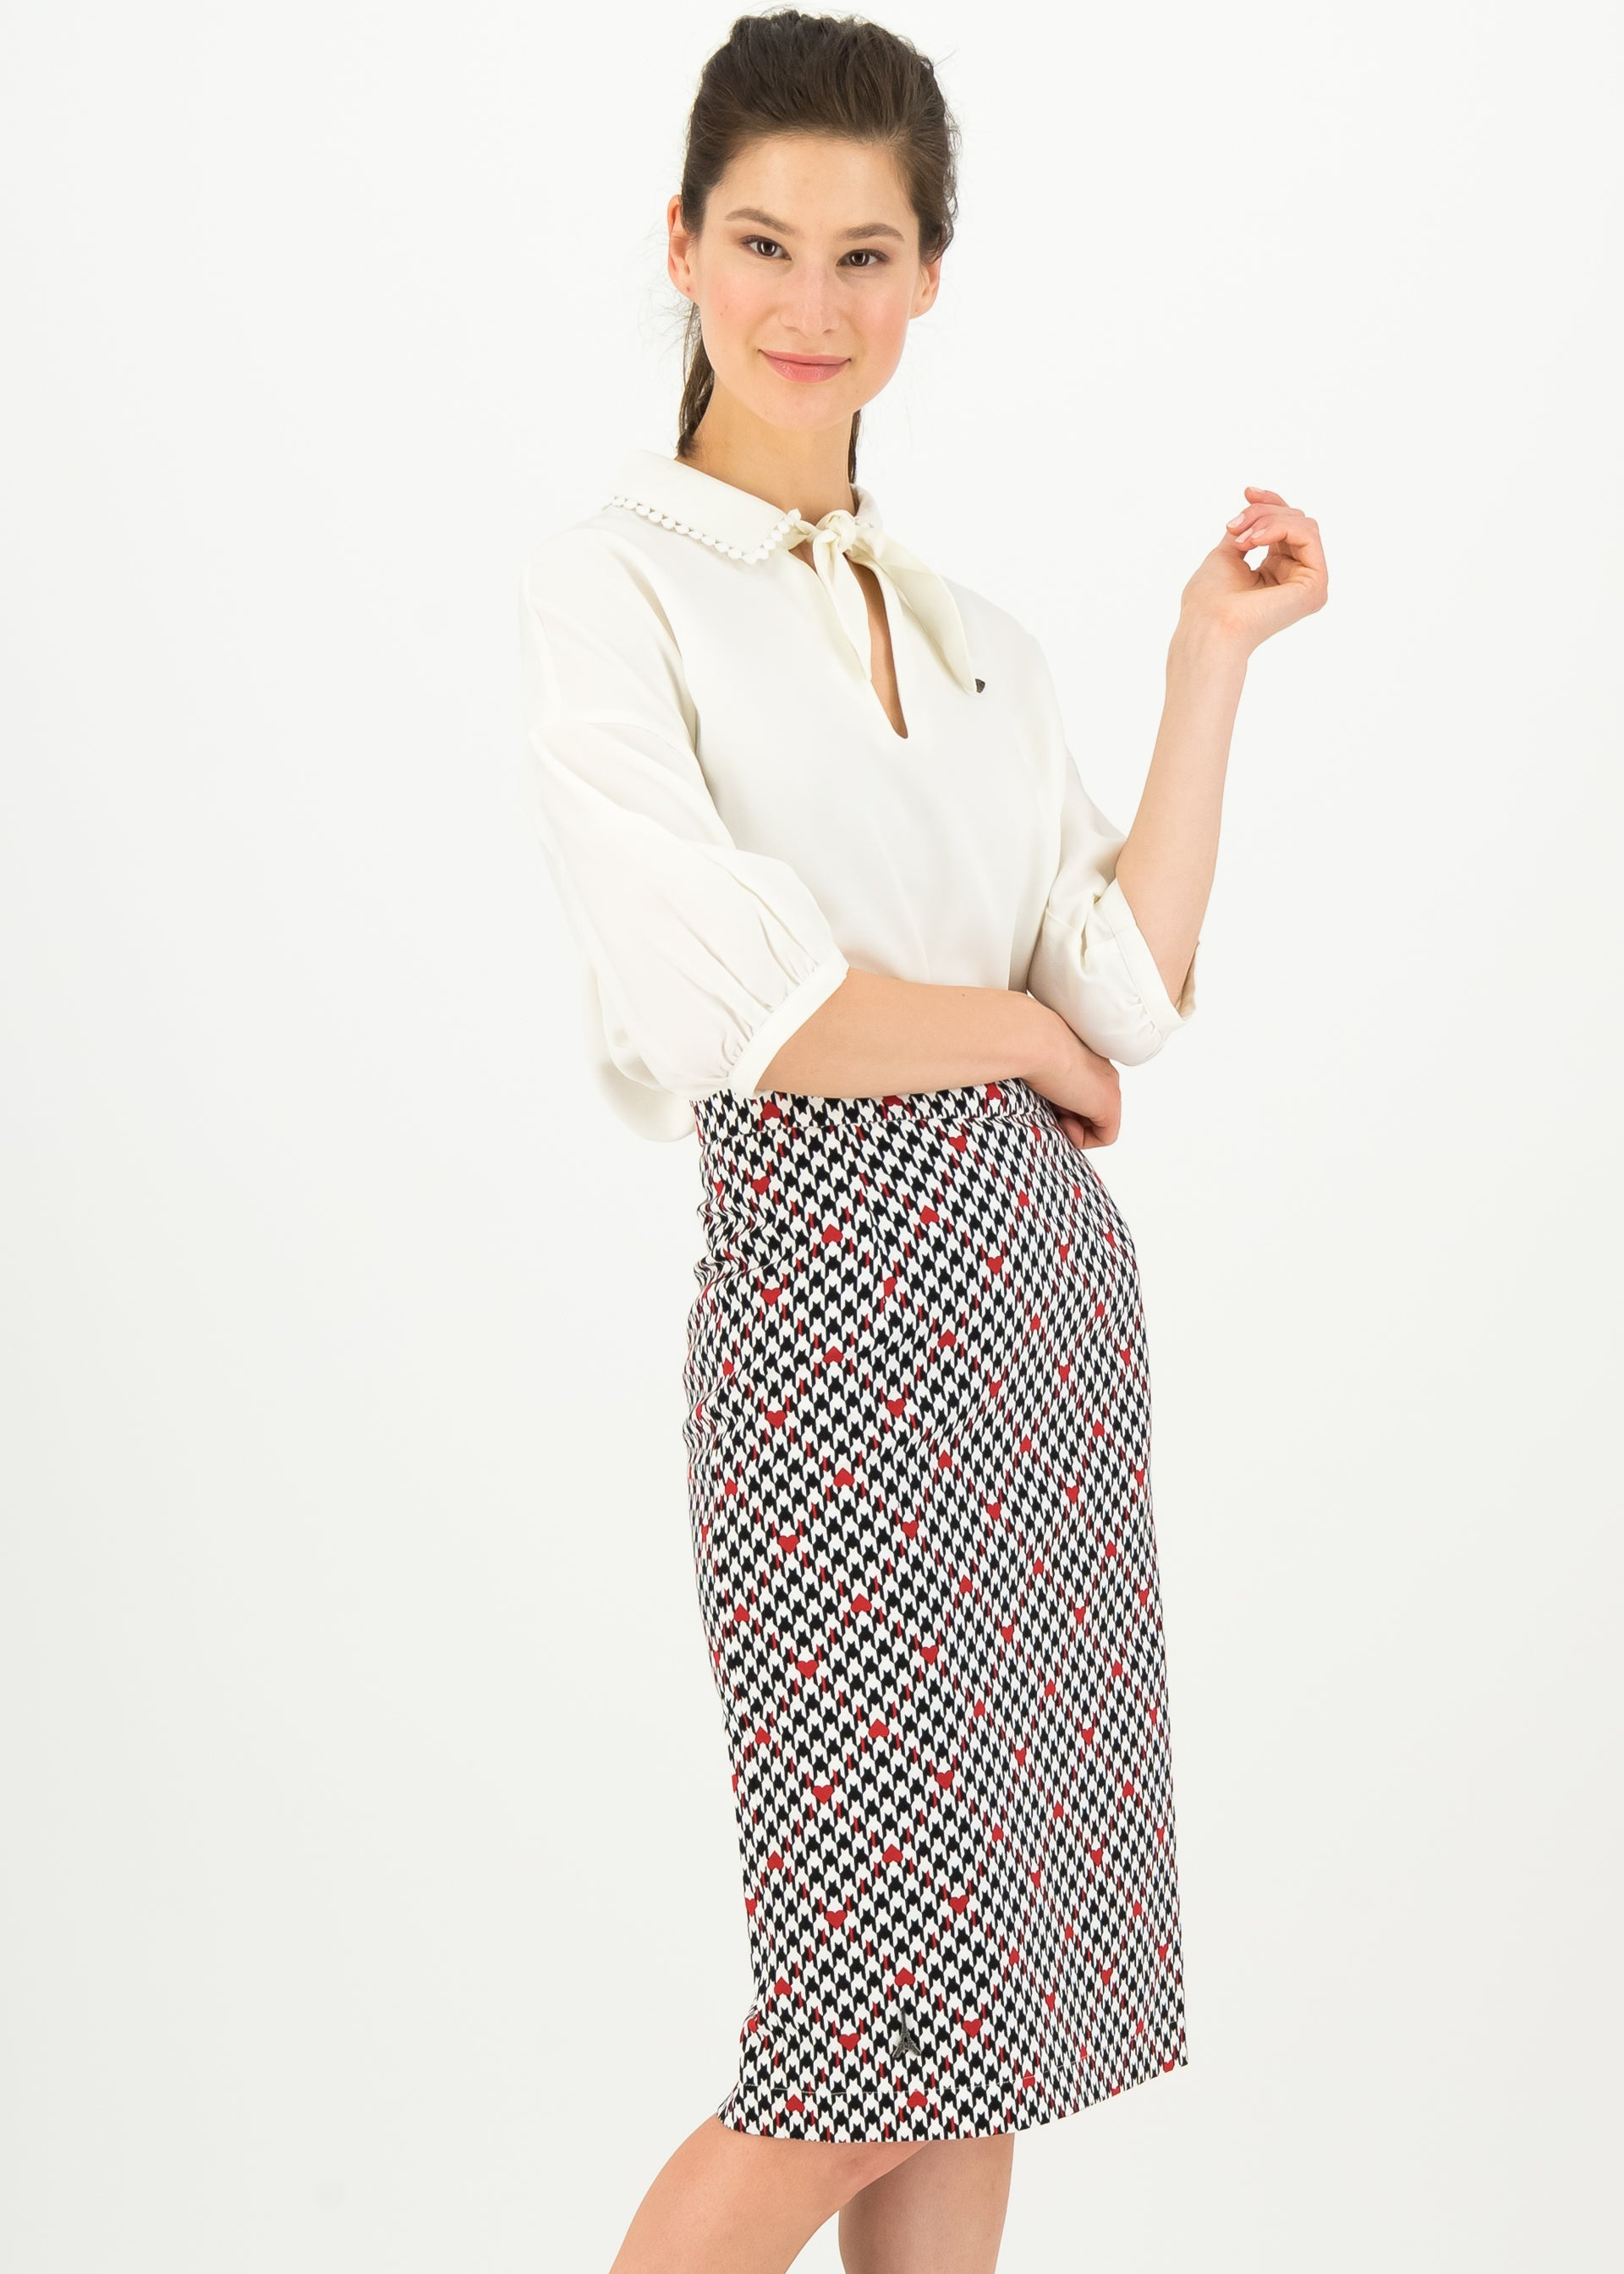 Damen Rock sweet seduction skirt